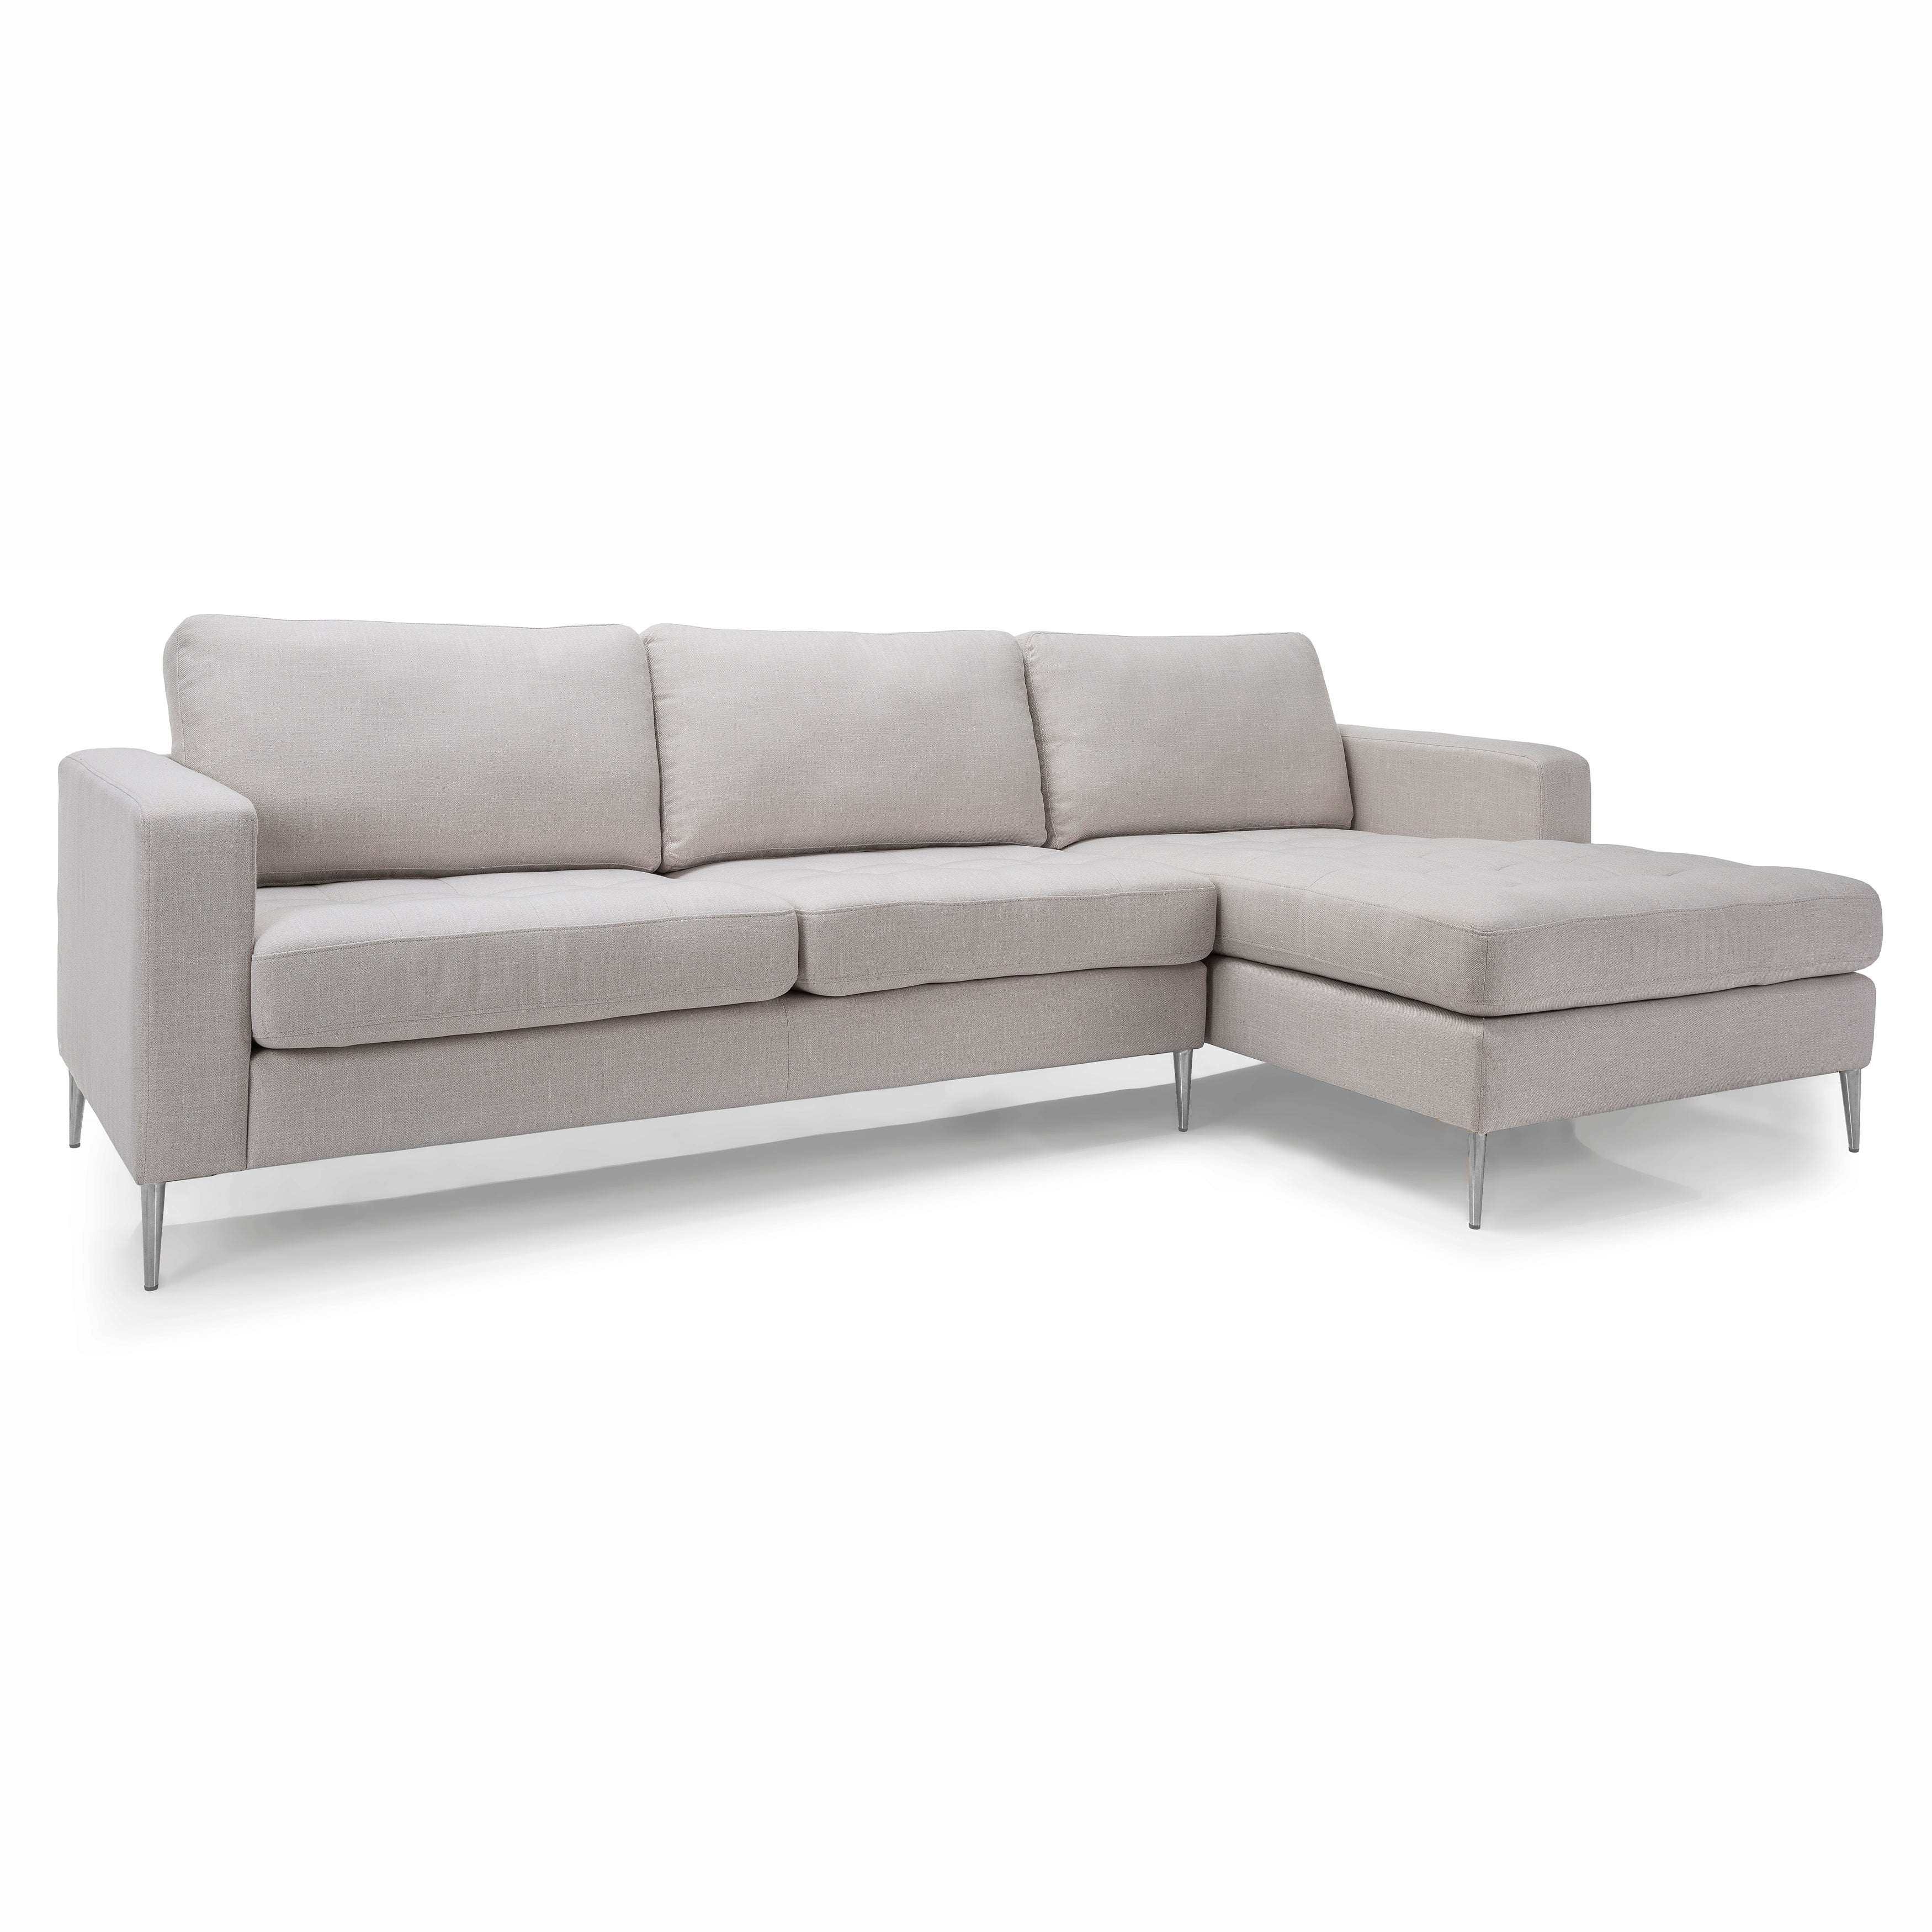 Jules Mid Century Modern Tufted Ivory Fabric Sectional Sofa